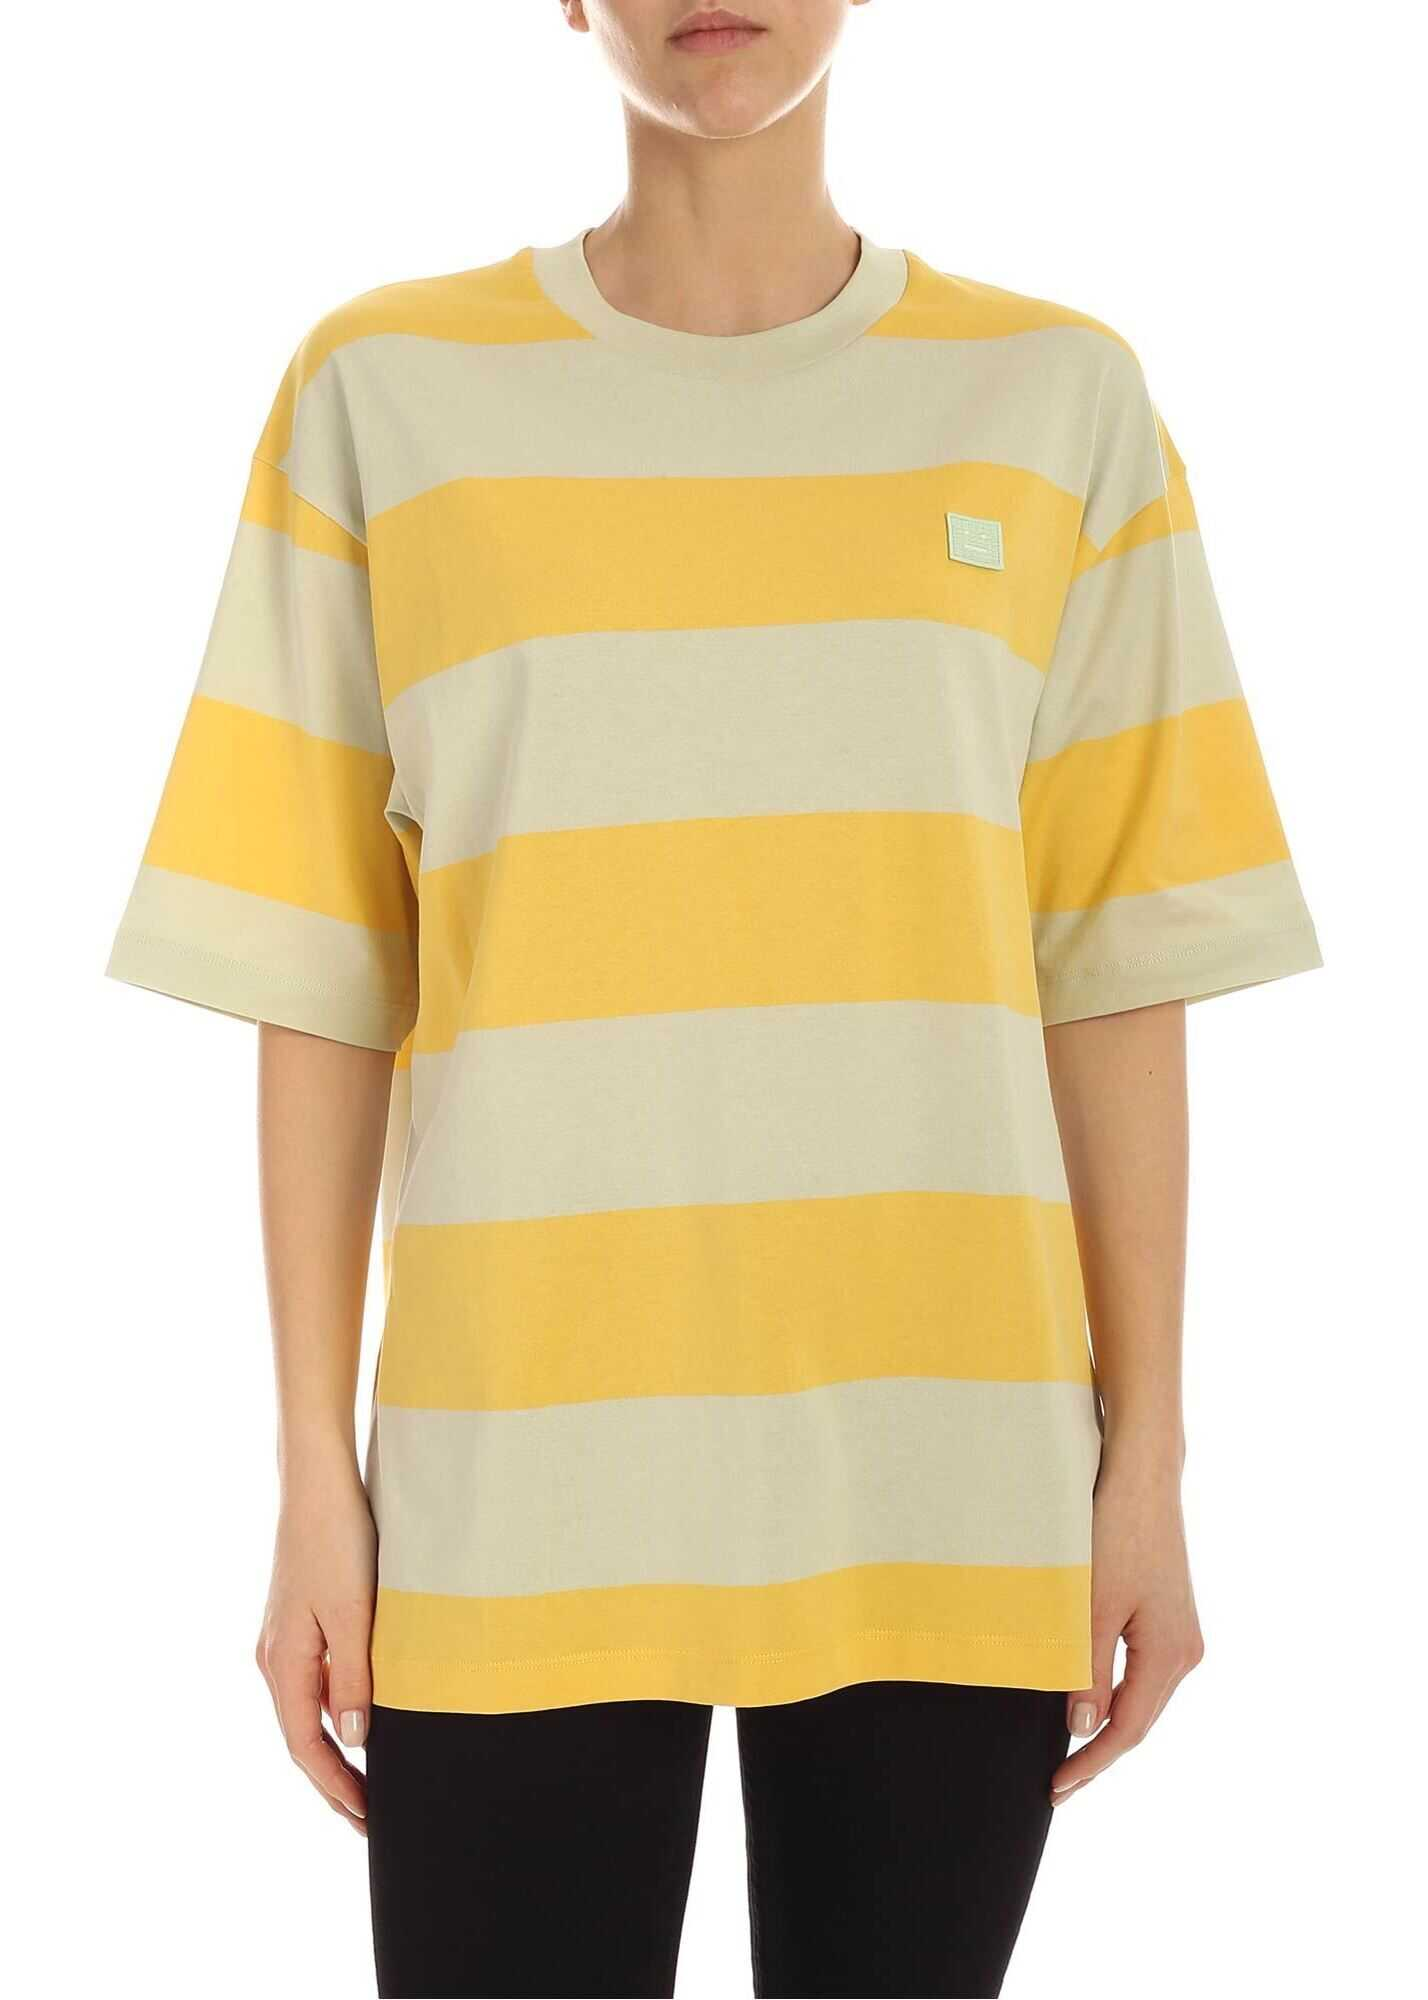 Acne Studios Logo T-Shirt In Yellow And Mint Green Yellow